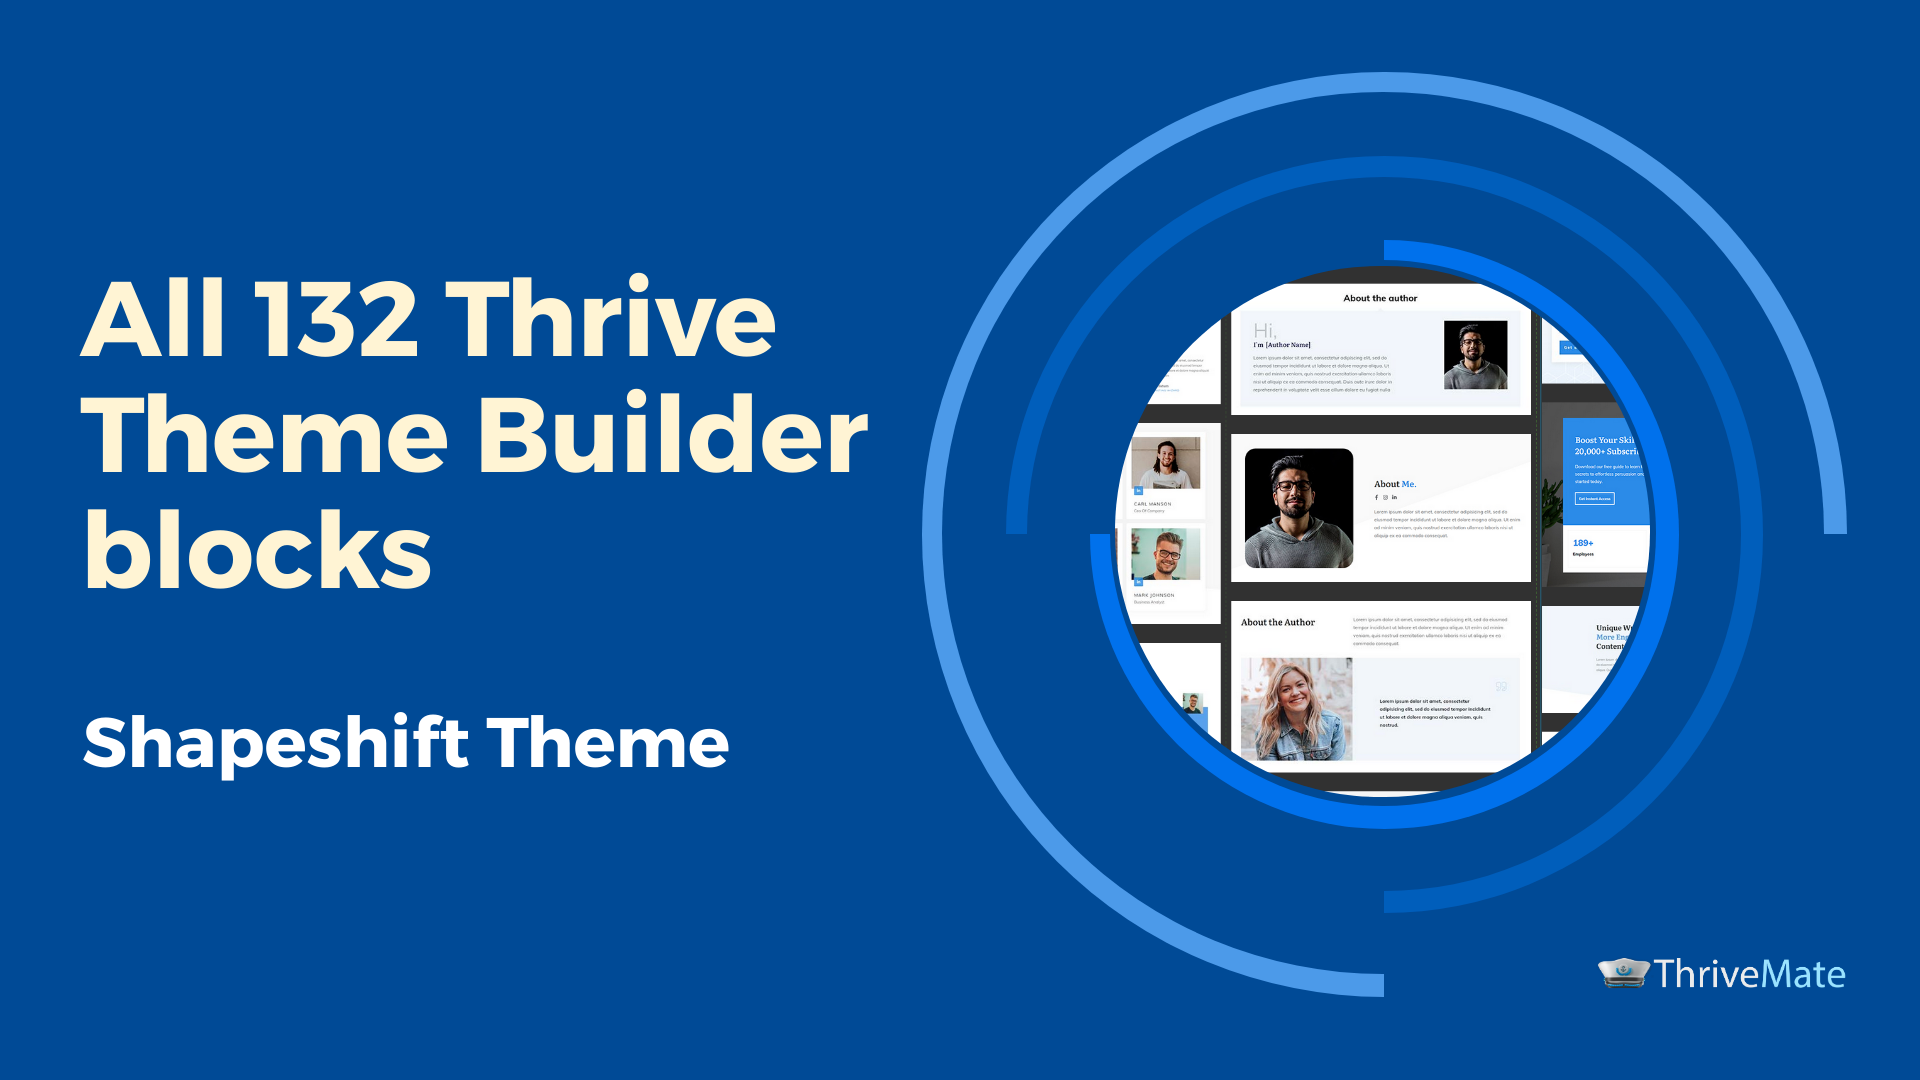 Thrive Theme Builder and Thrive Architect consistent headers and footers in 2020